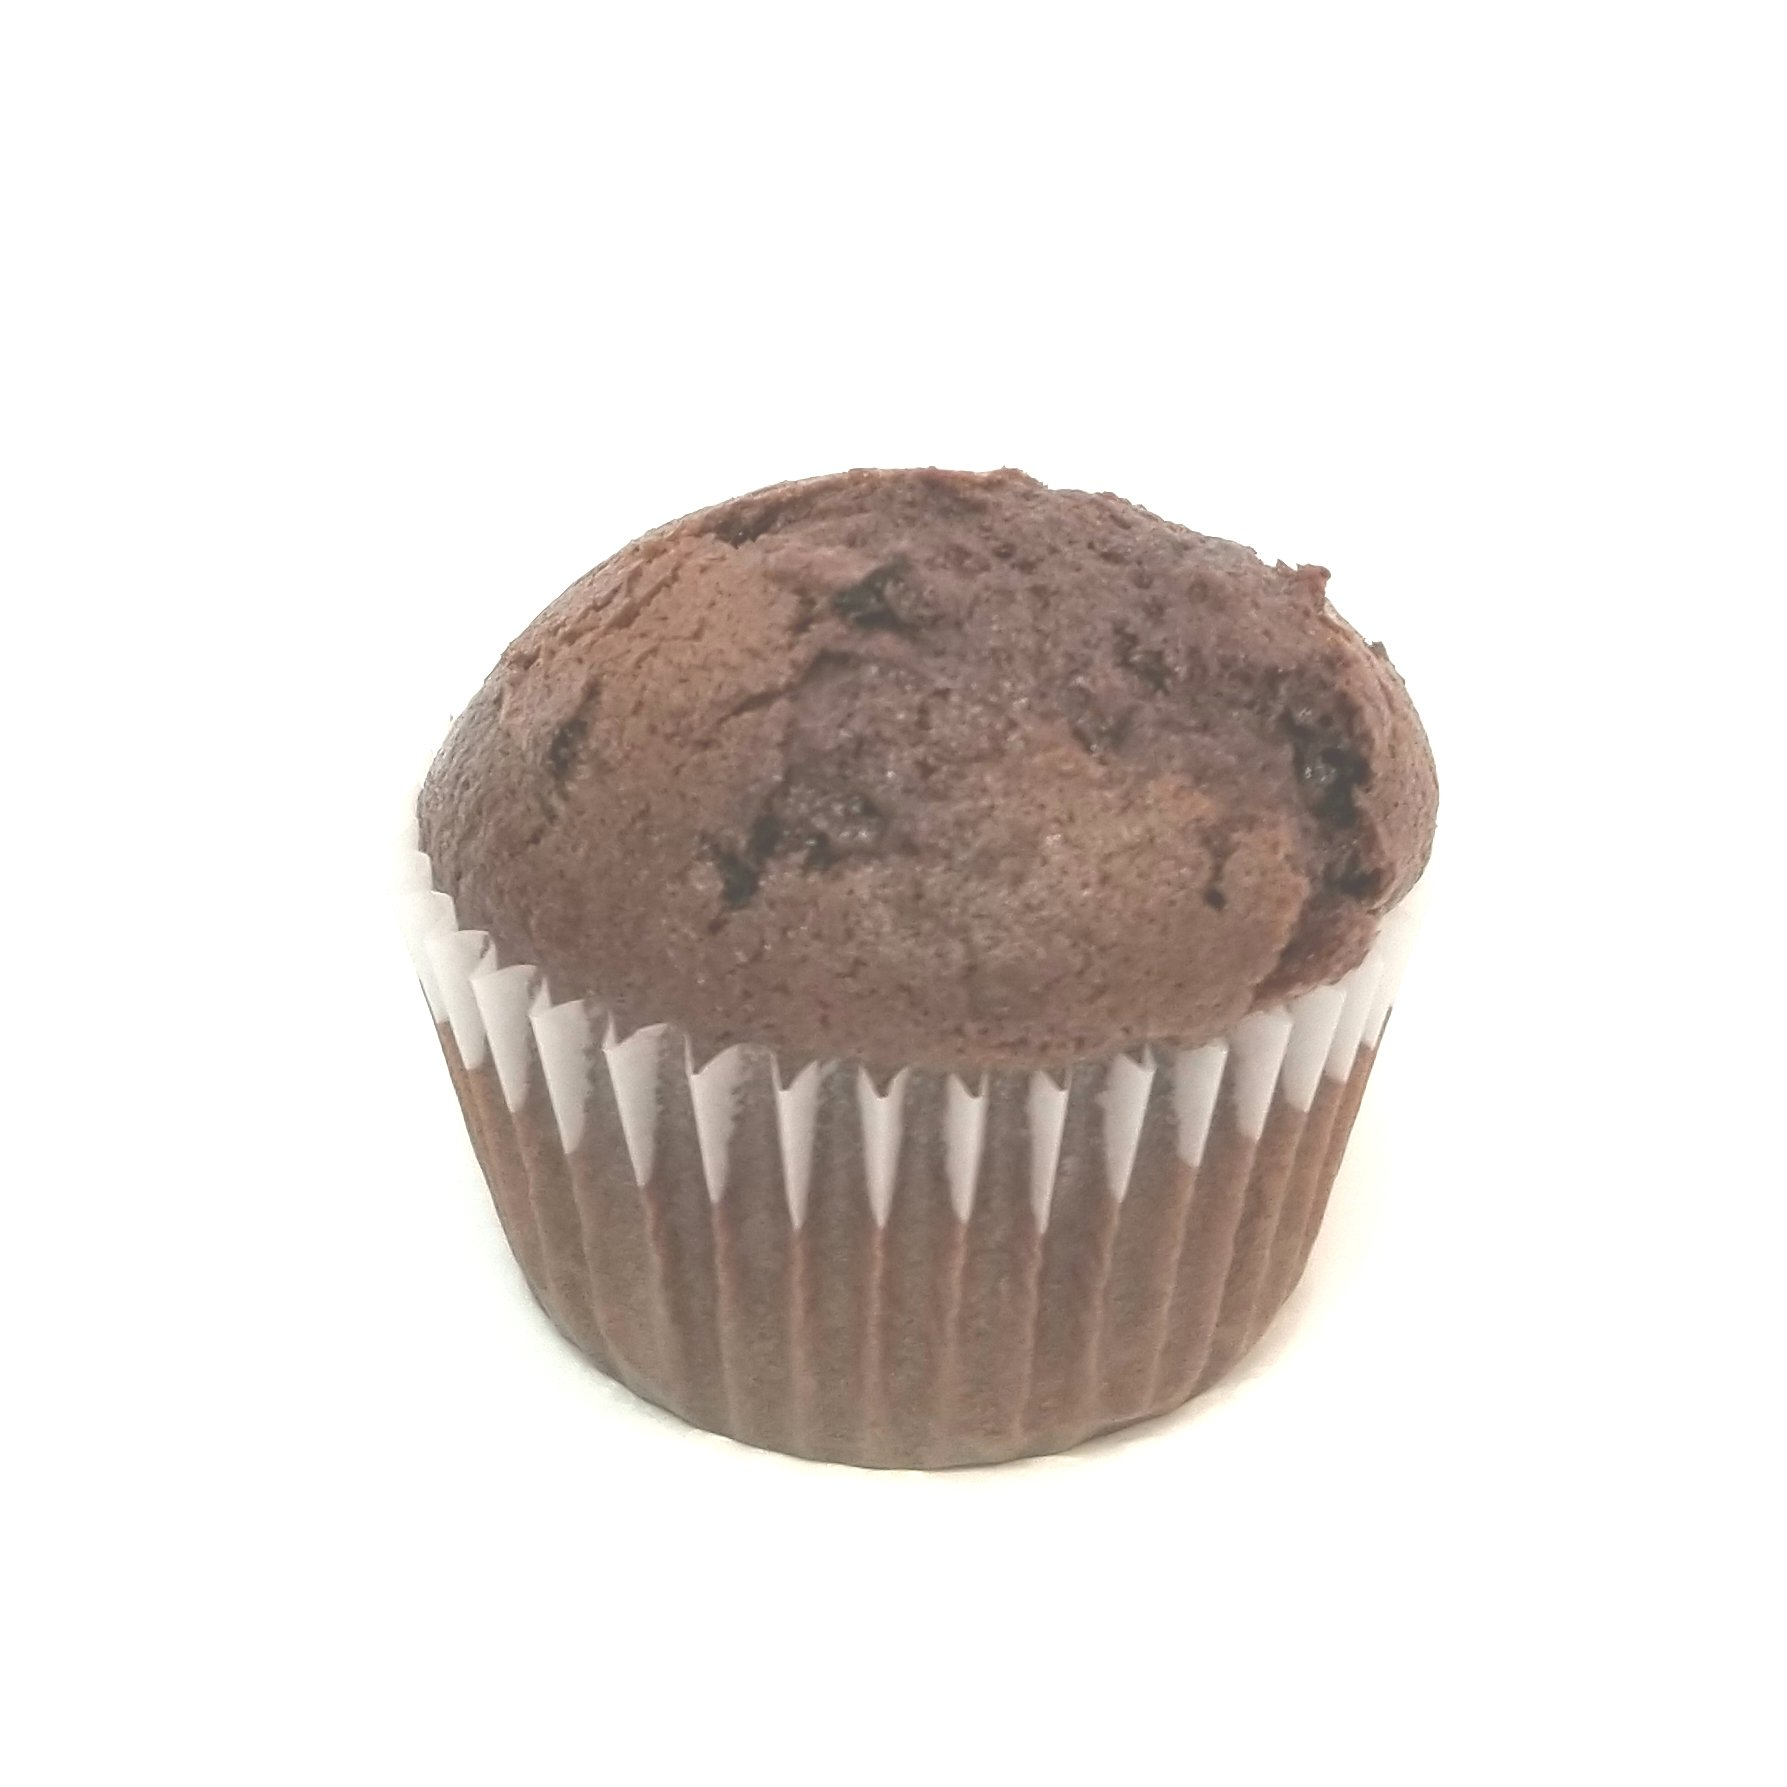 Rich Velvety Chocolate Zucchini Muffins 12 Count Value Pack by Lilee's Gourmet Bakery